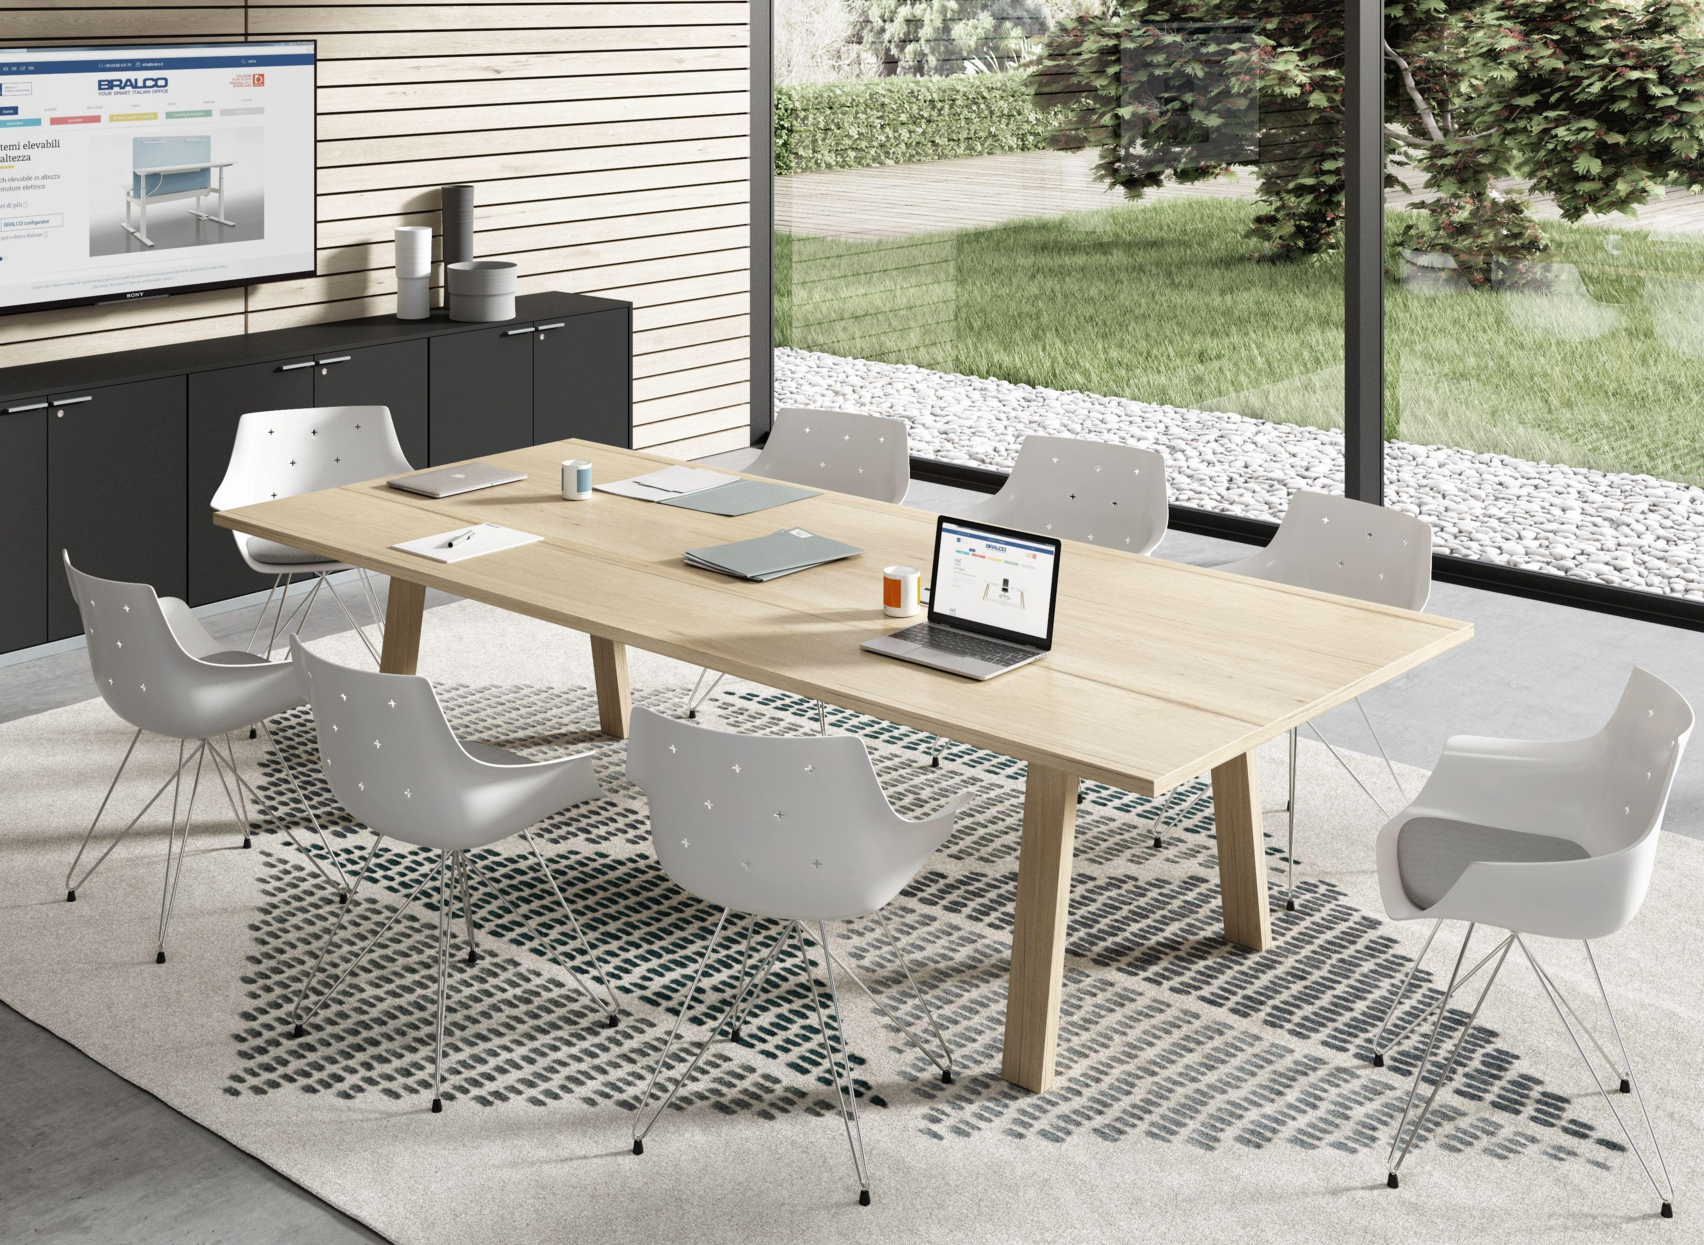 Grande Table Scandinave Grande Table De Co Working En Bois